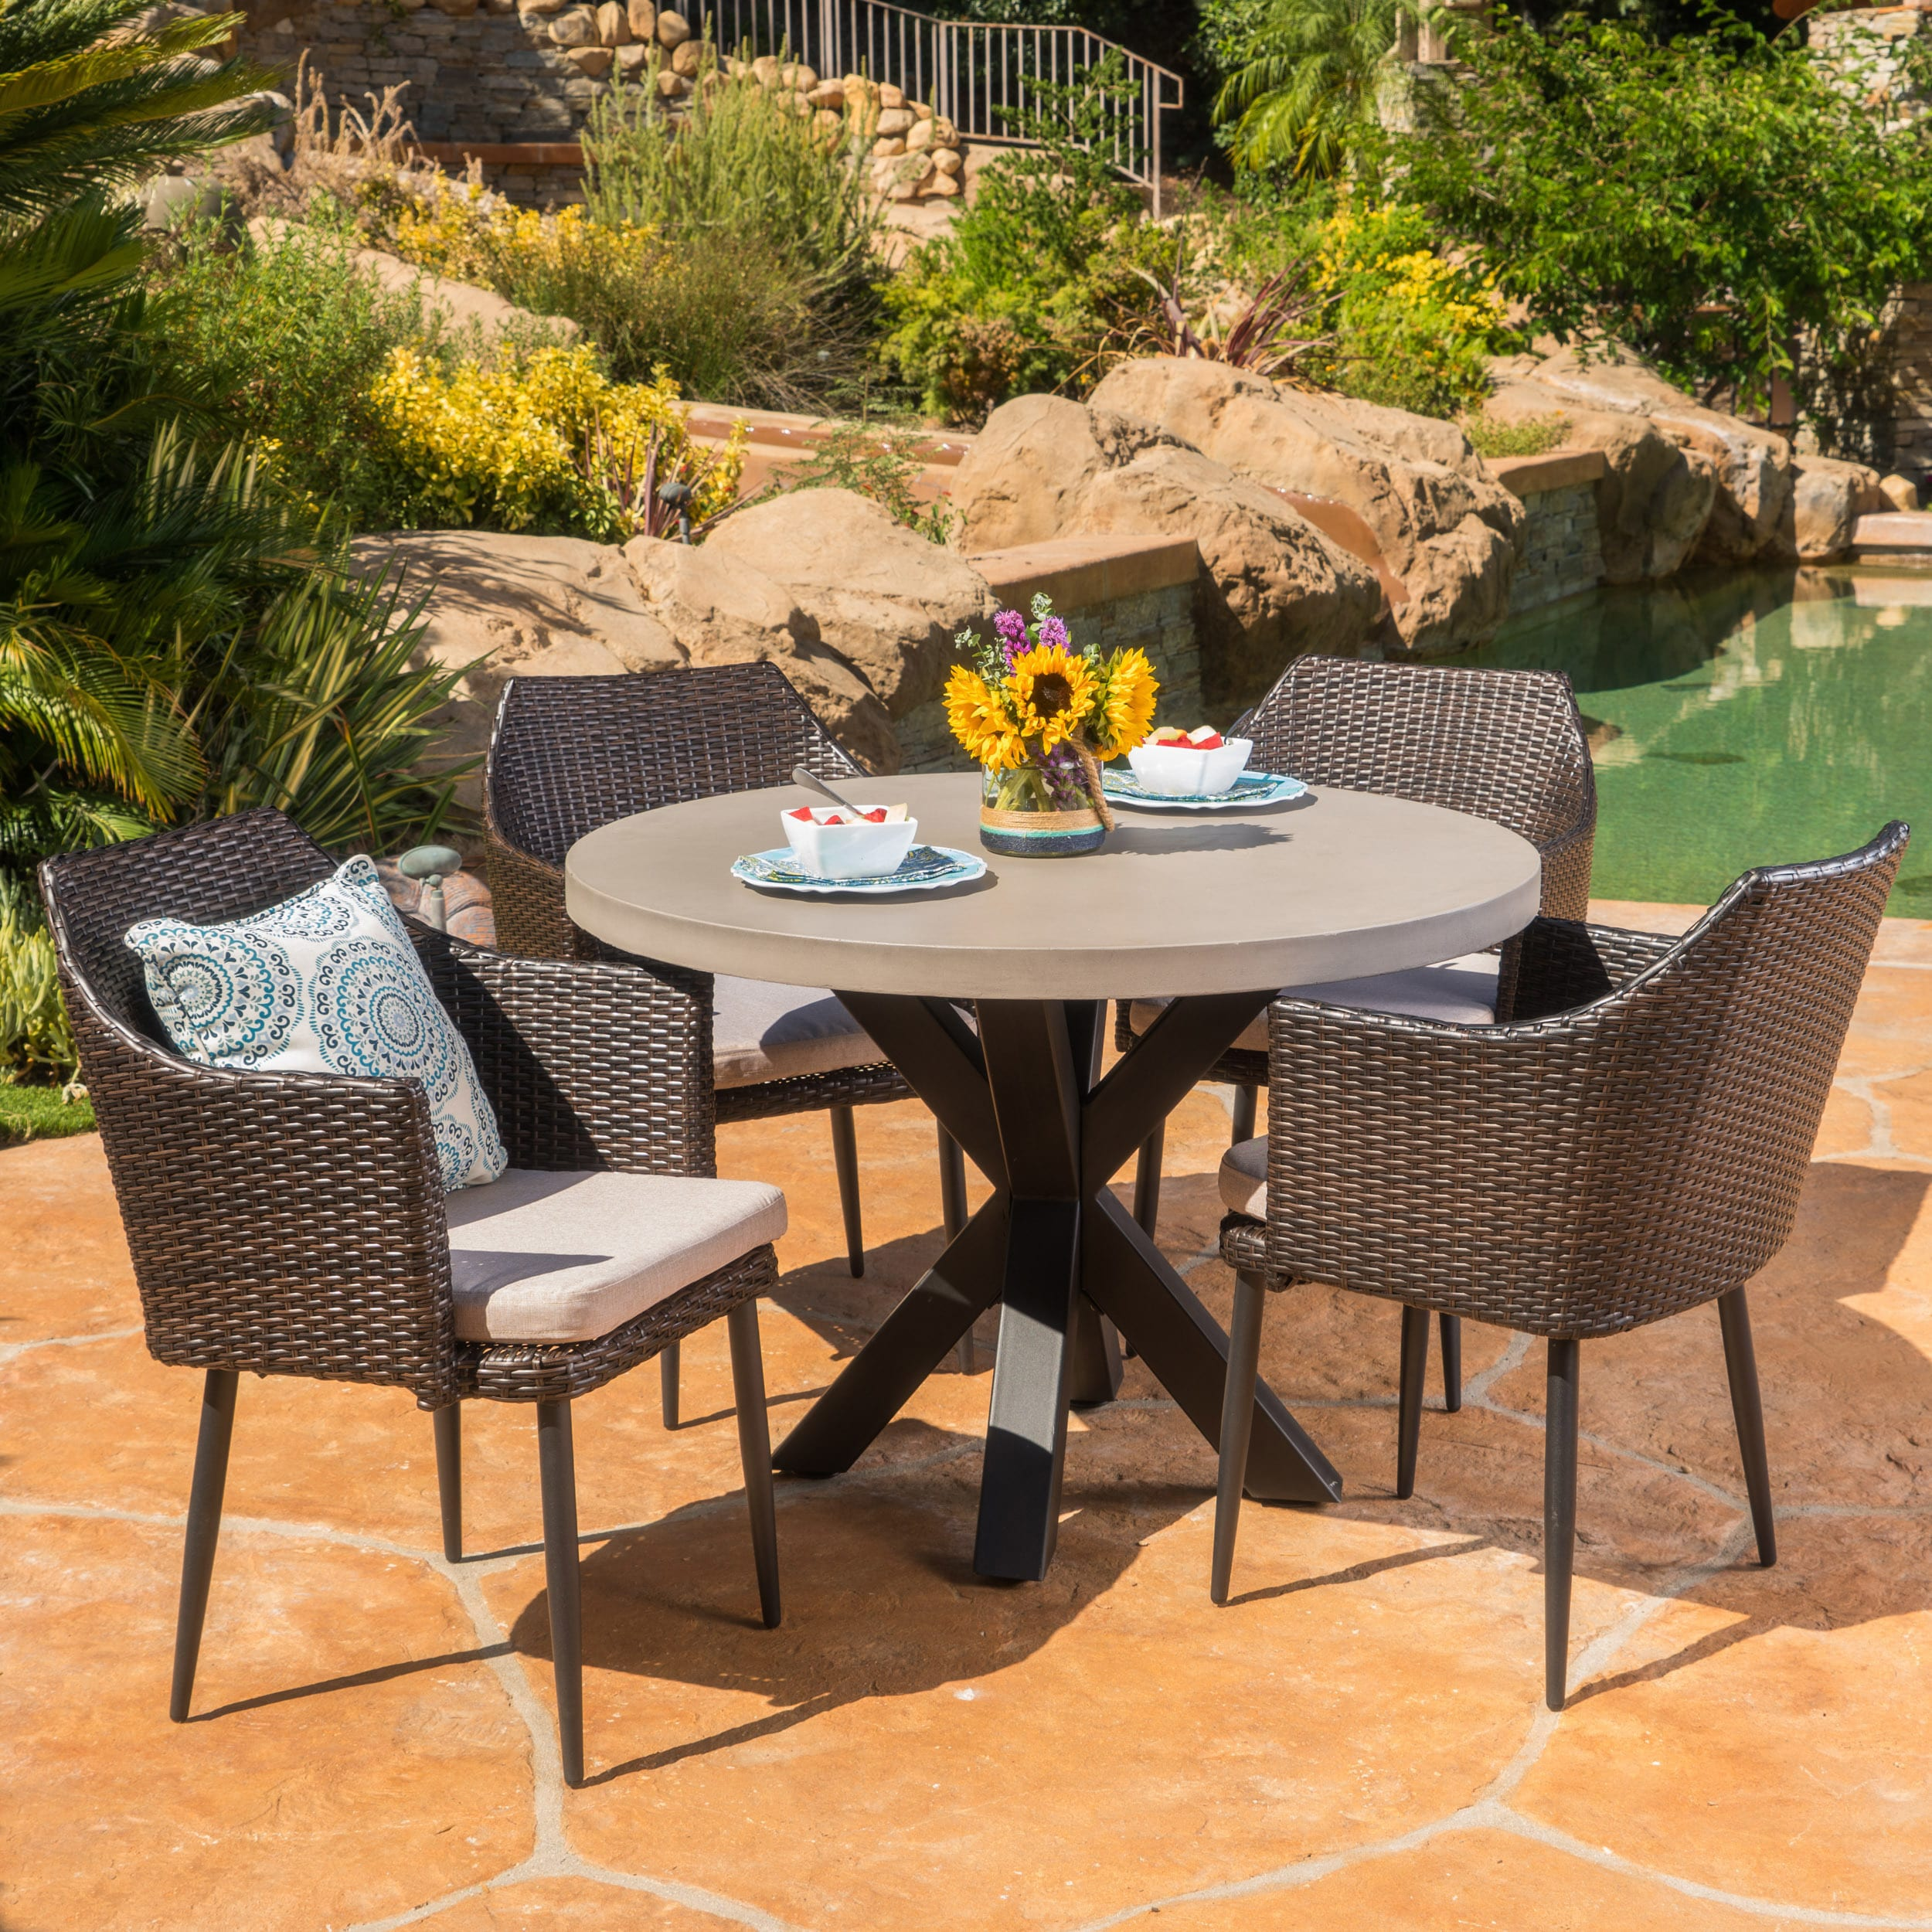 Shop Nyla Outdoor 5-Piece Round Wicker Light Weight Concrete Dining ...